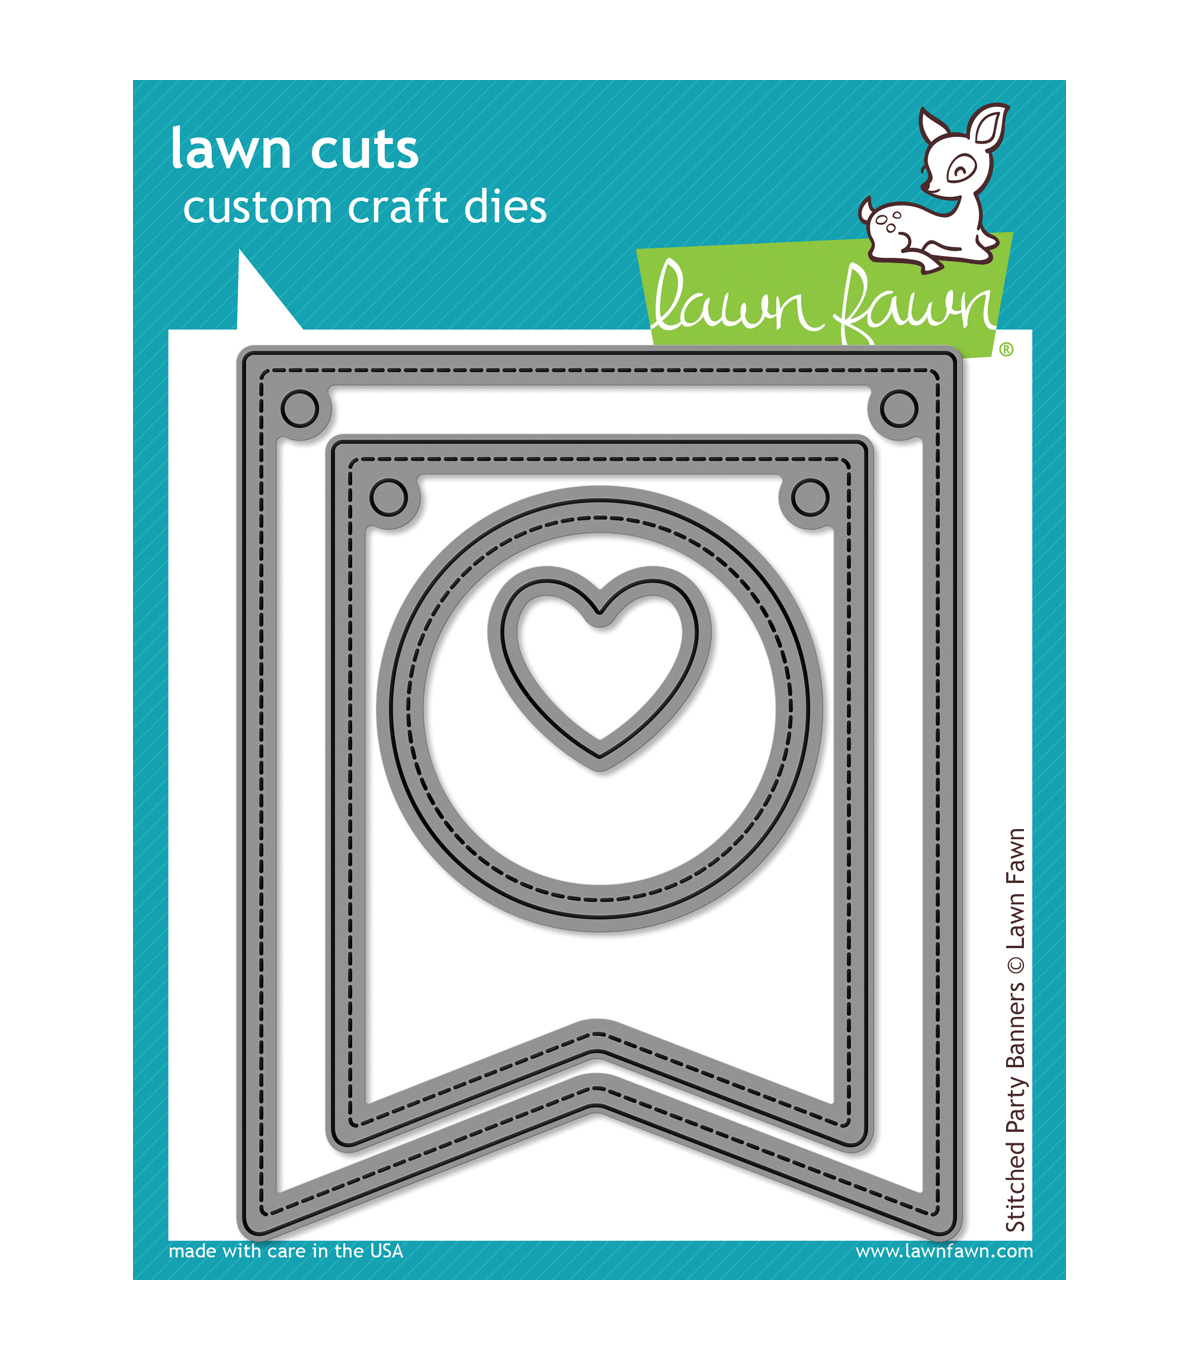 Lawn Fawn Lawn Cuts Custom Craft Die -Stitched Party Banners